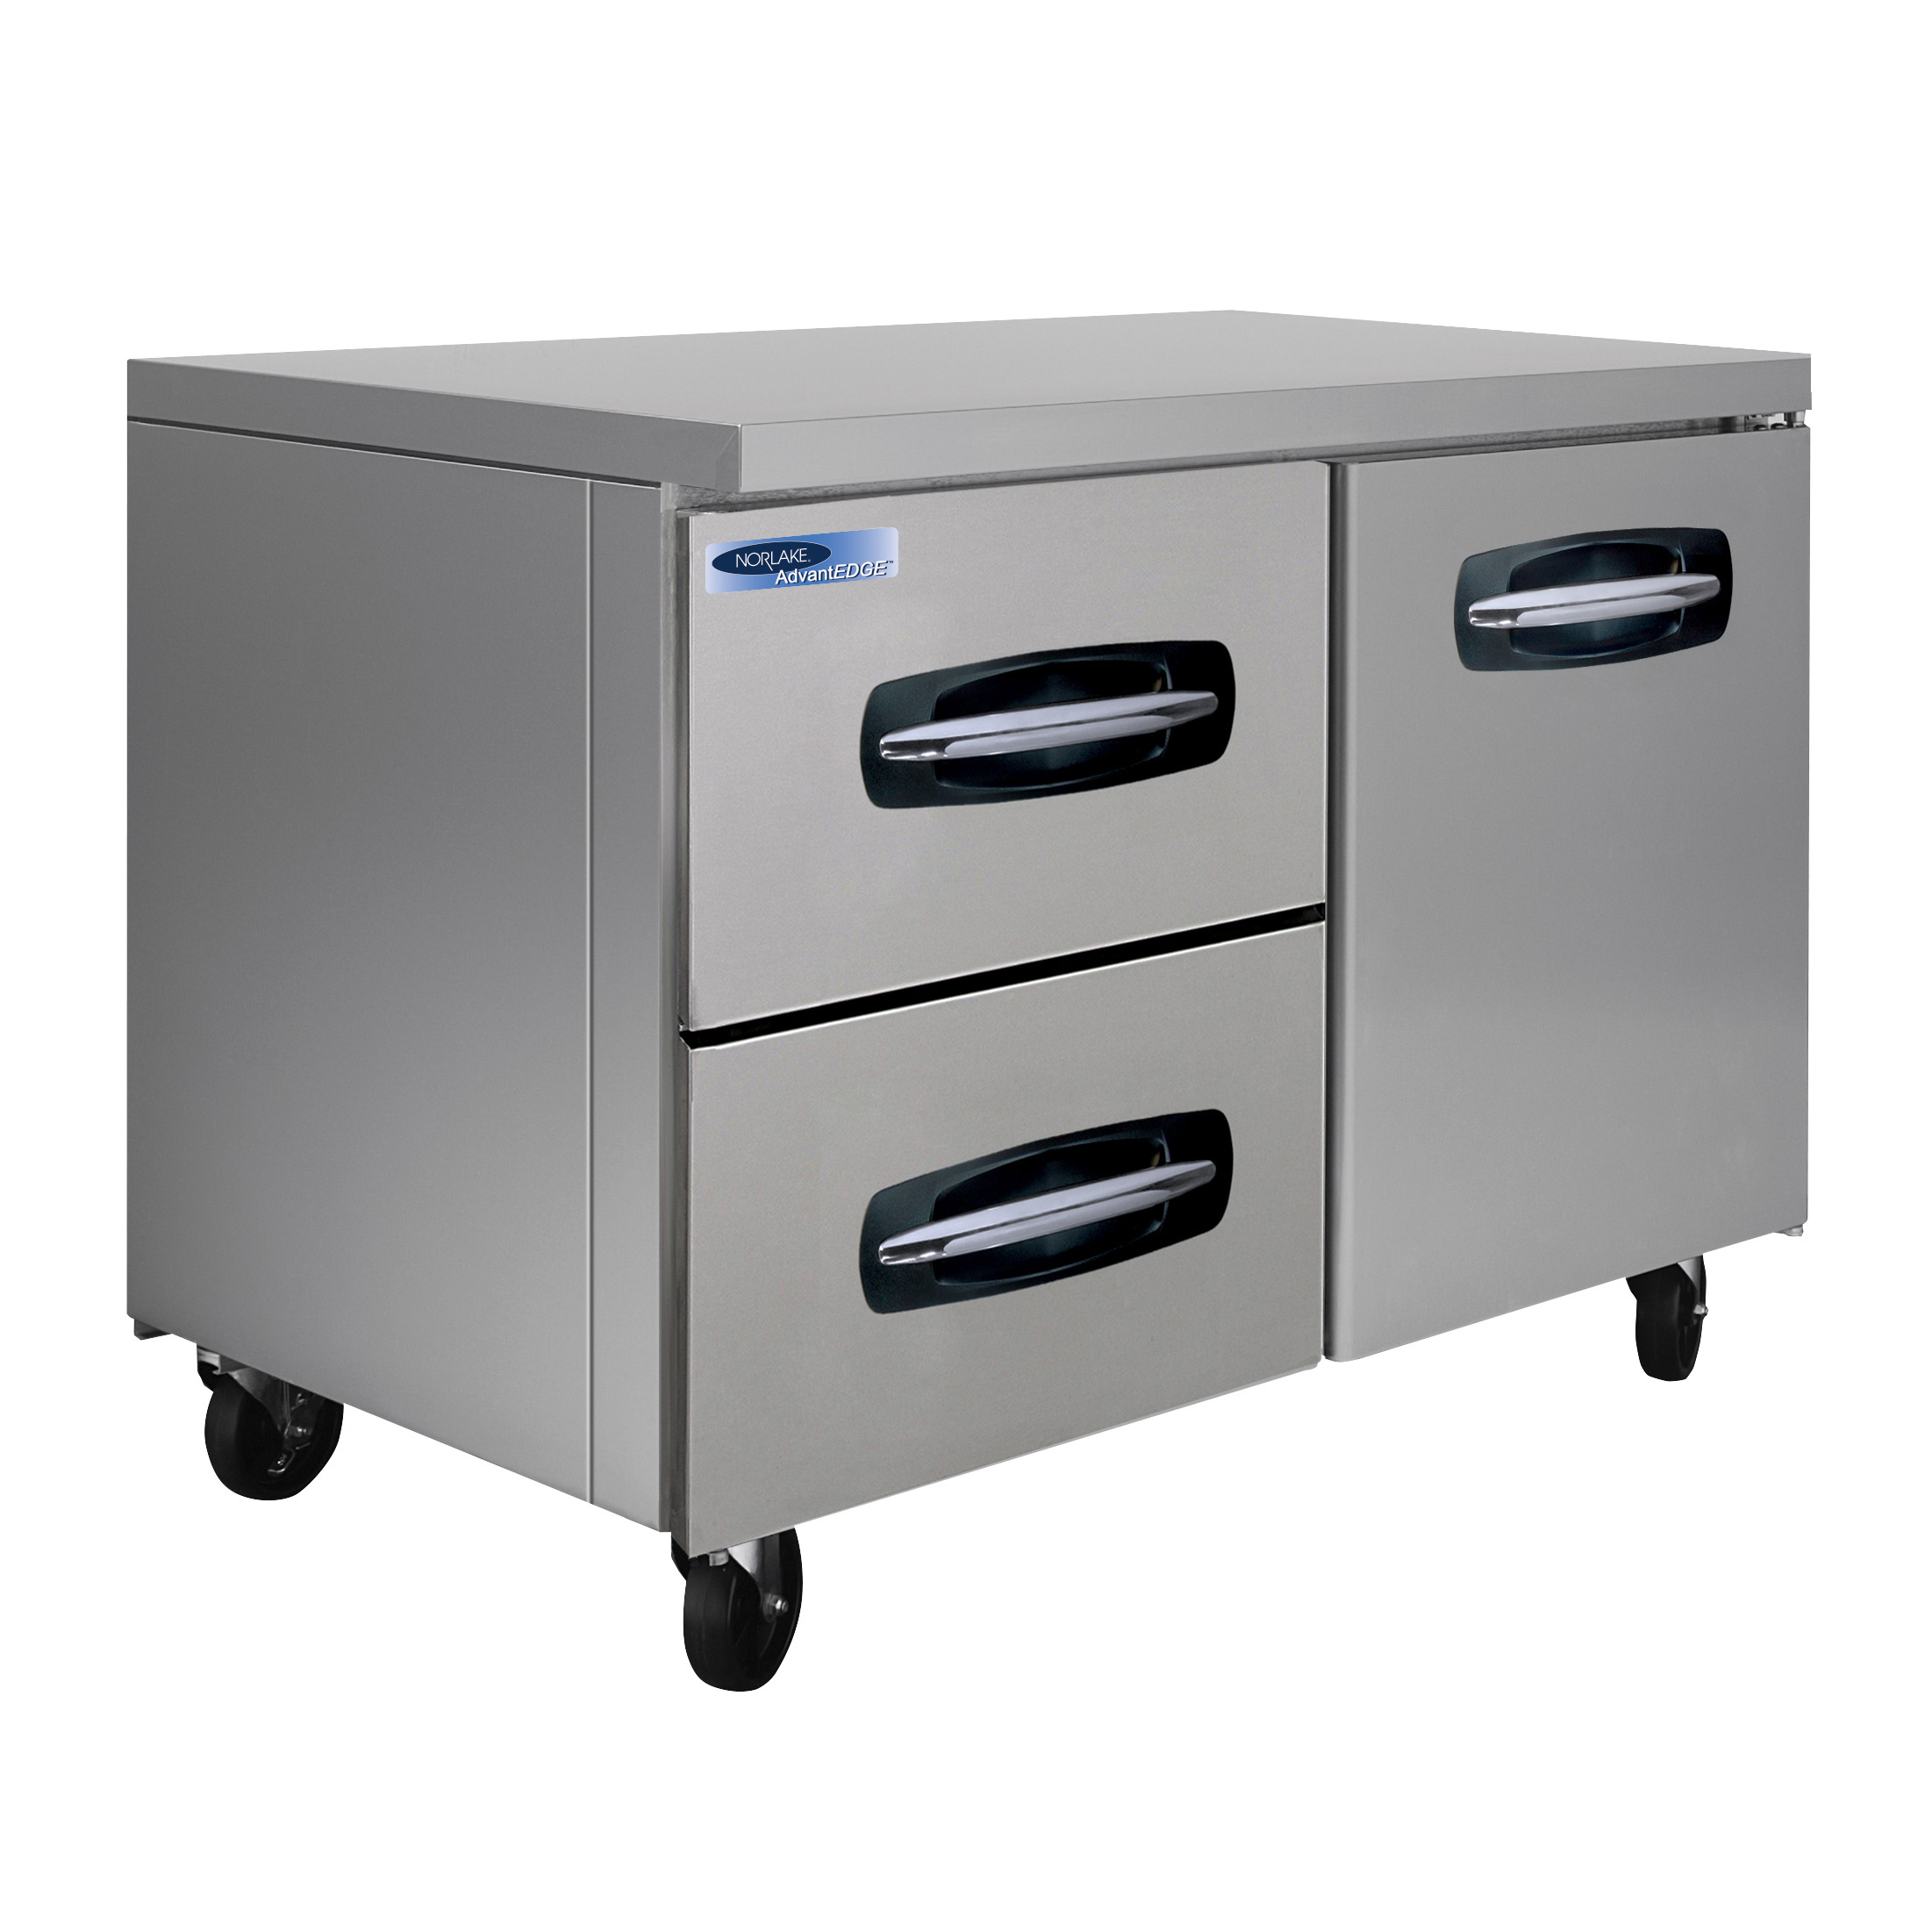 Nor-Lake NLUR48A-003B refrigerator, undercounter, reach-in